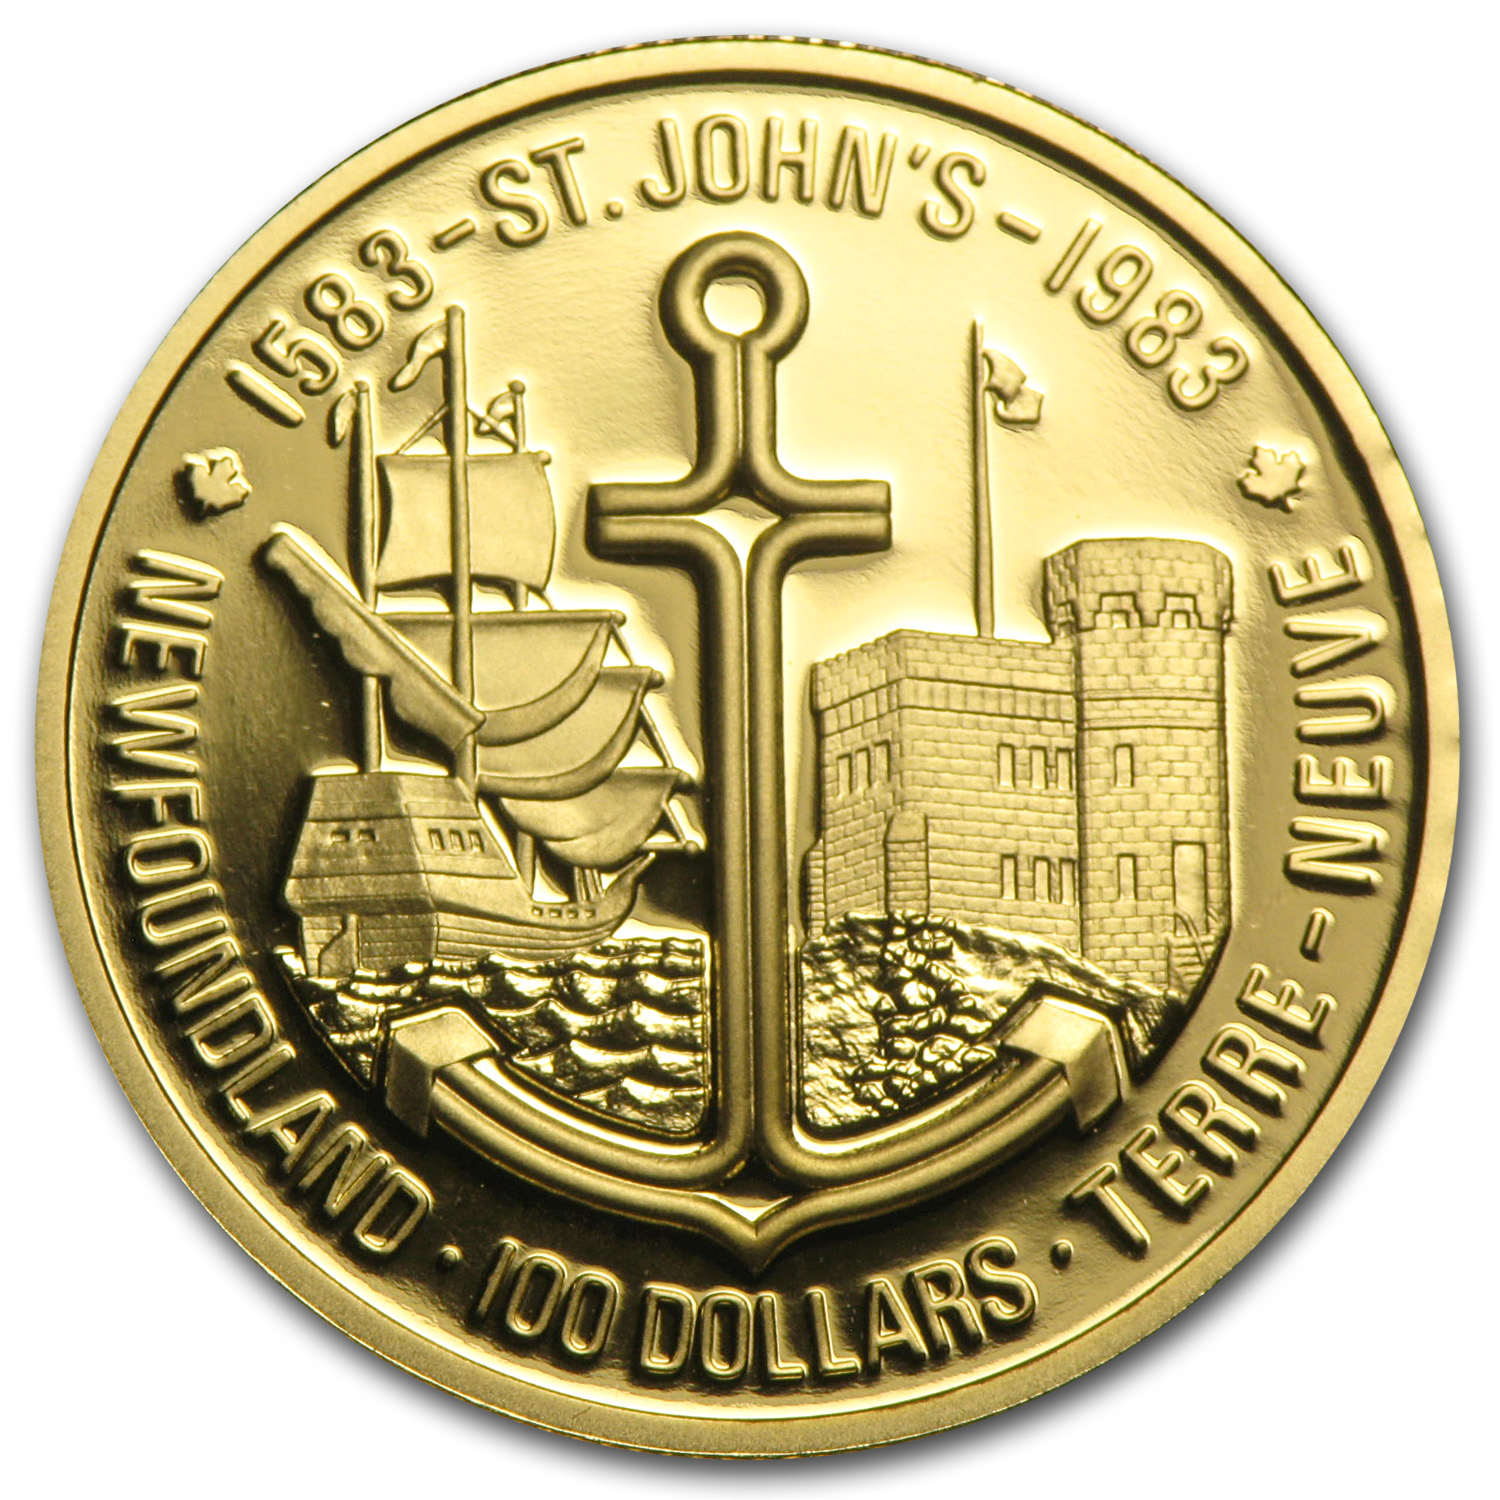 1983 1/2 oz Gold Canadian $100 St. John's Newfoundland Proof